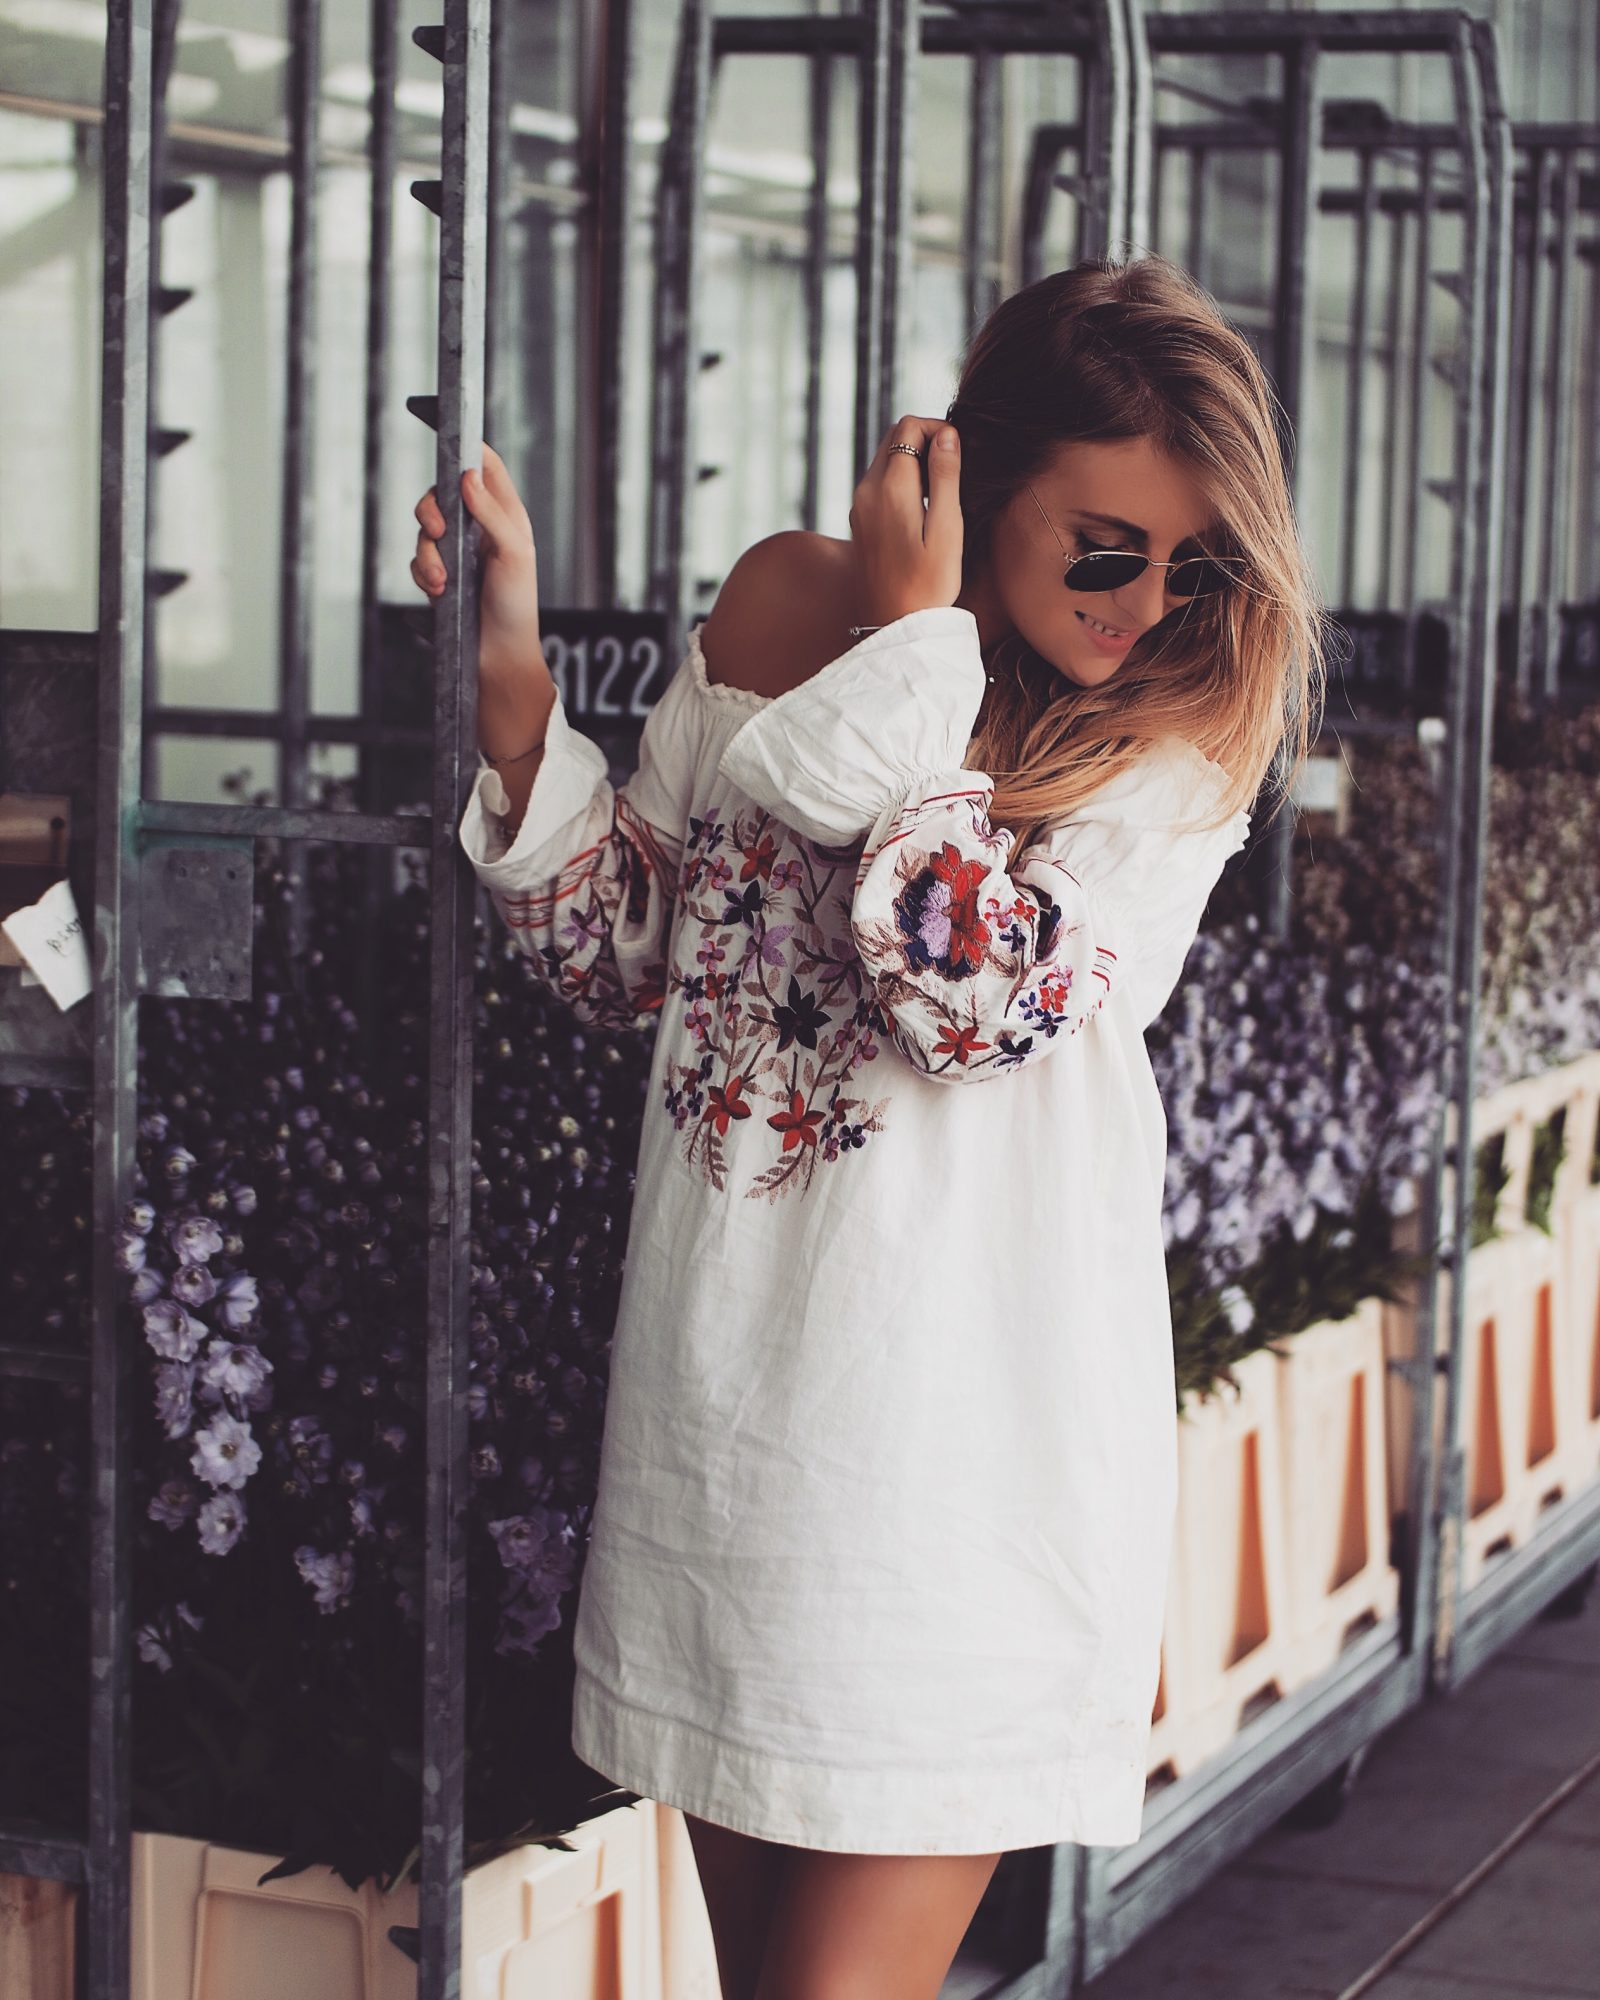 48 Hours In Amsterdam - Free People Embroidered Dress